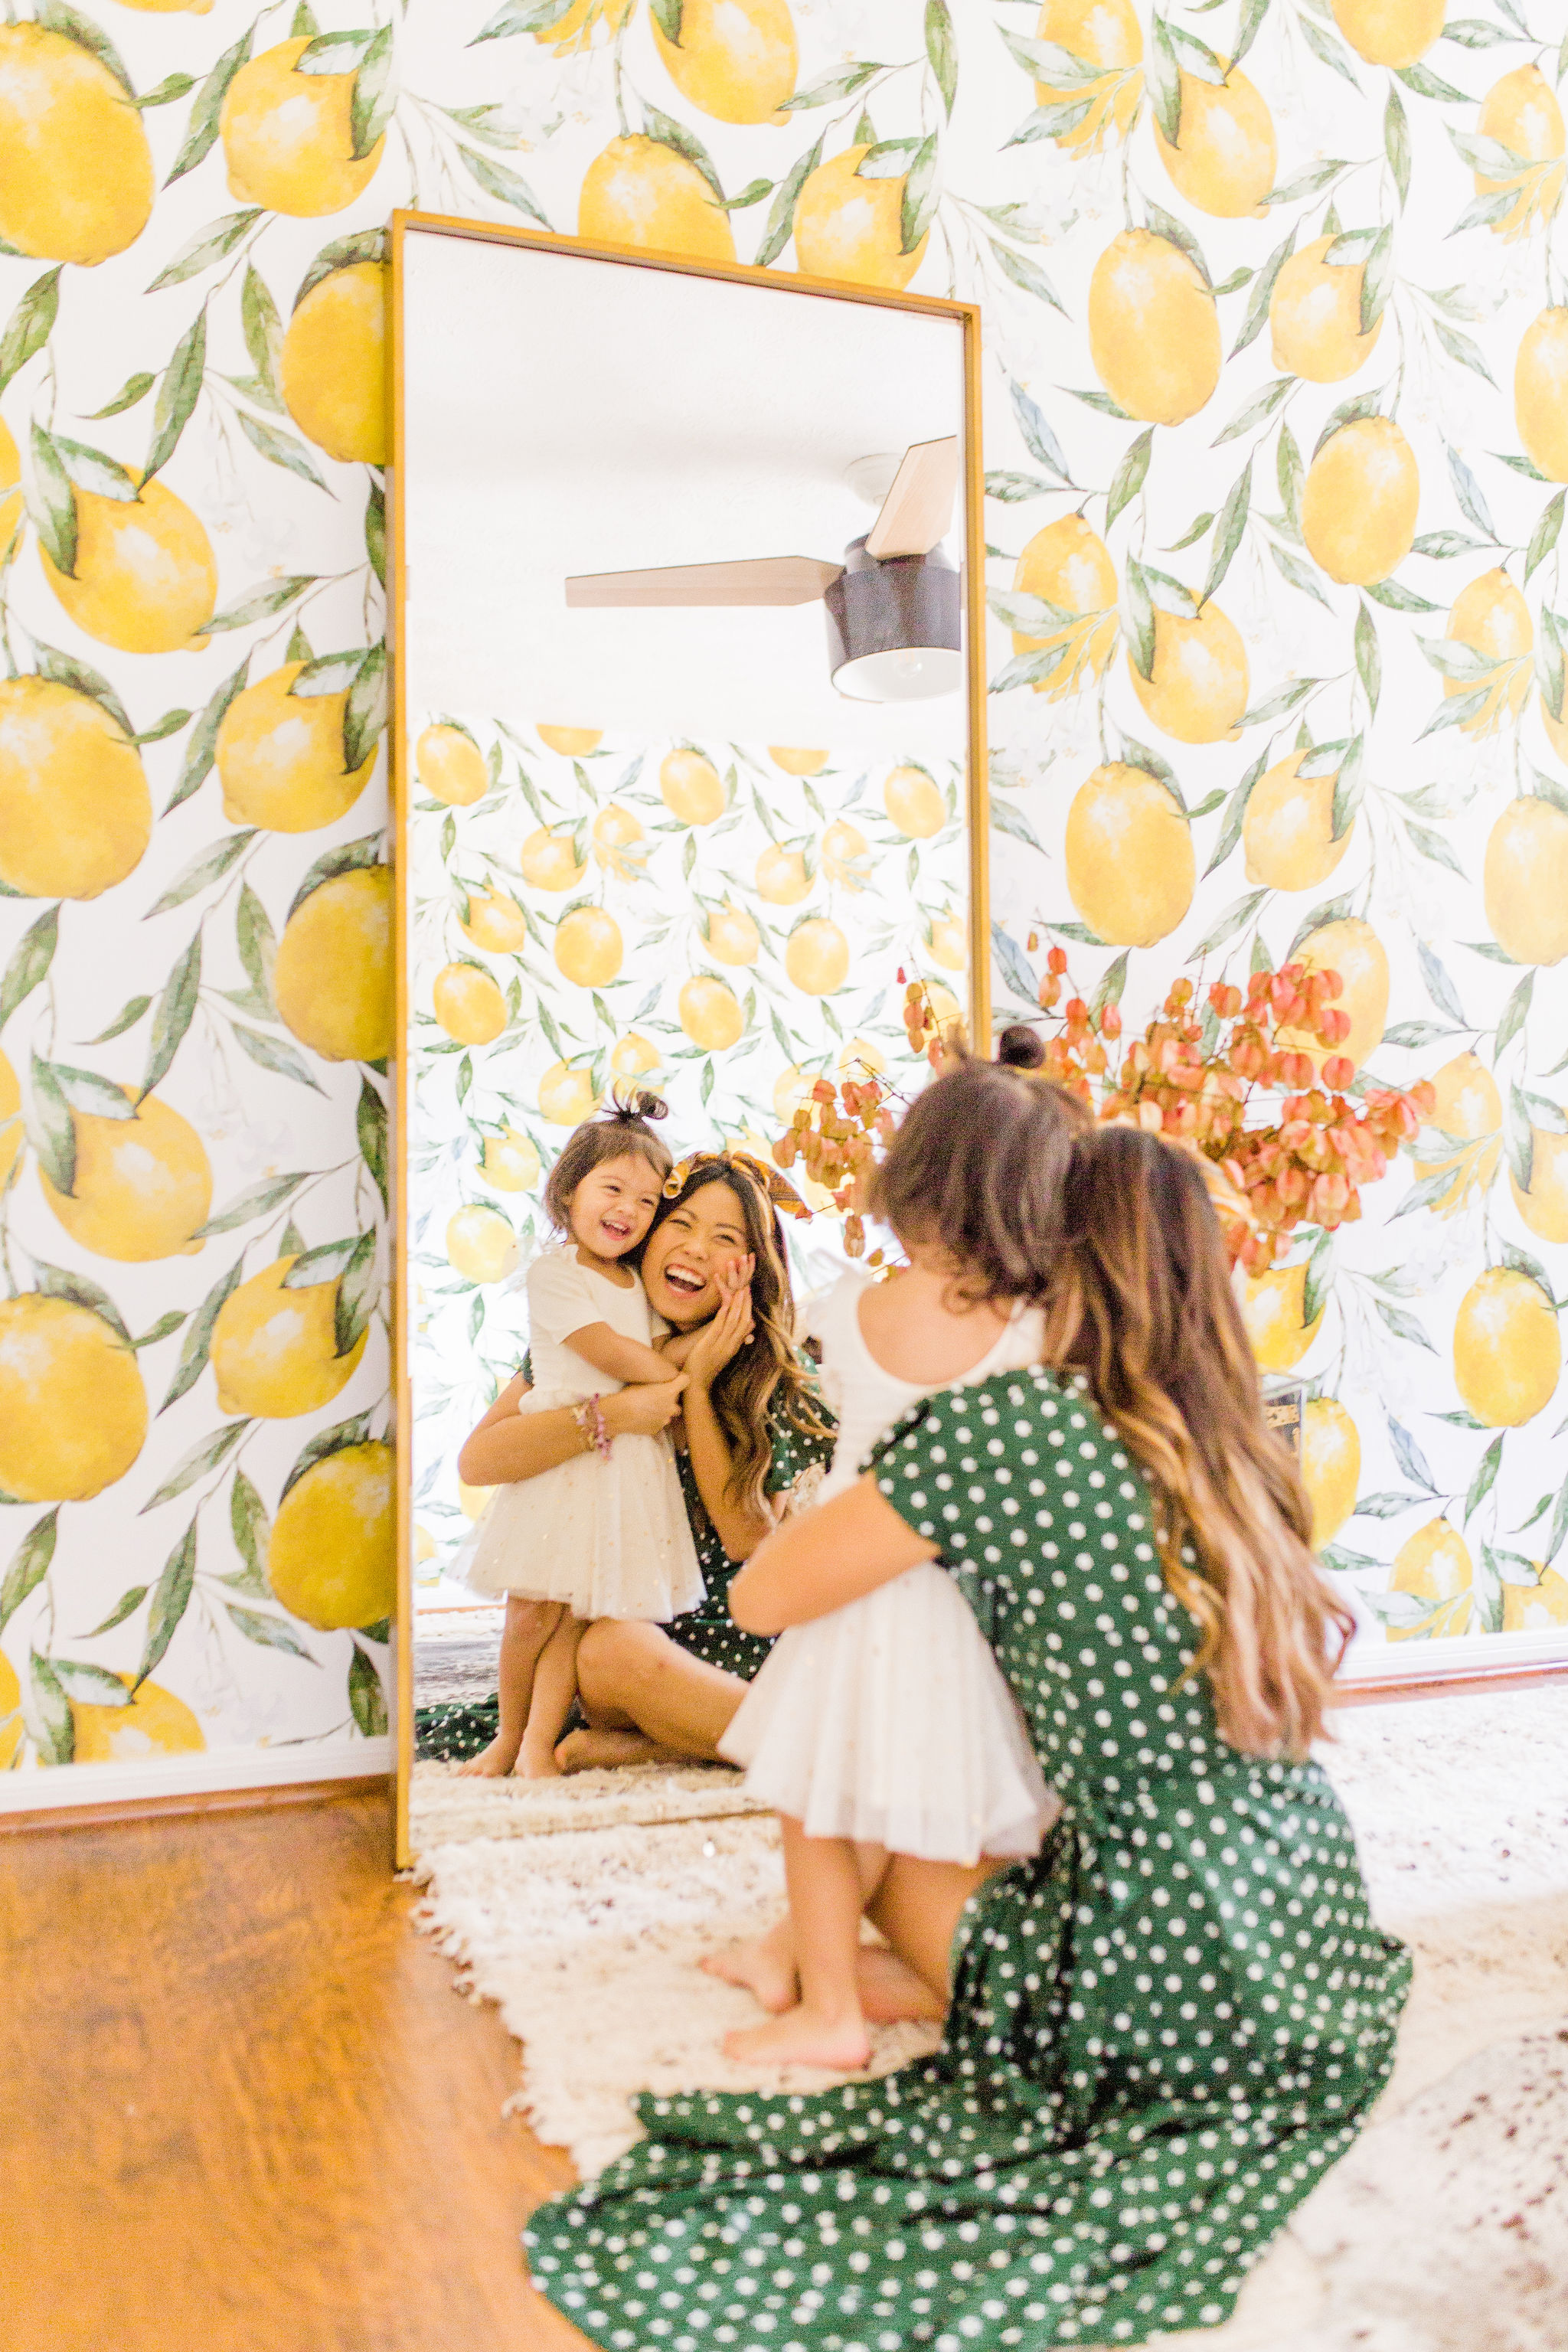 Nov 5 Guest Room Makeover you can do over the weekend with Lemon Wallpaper FAQ about installation